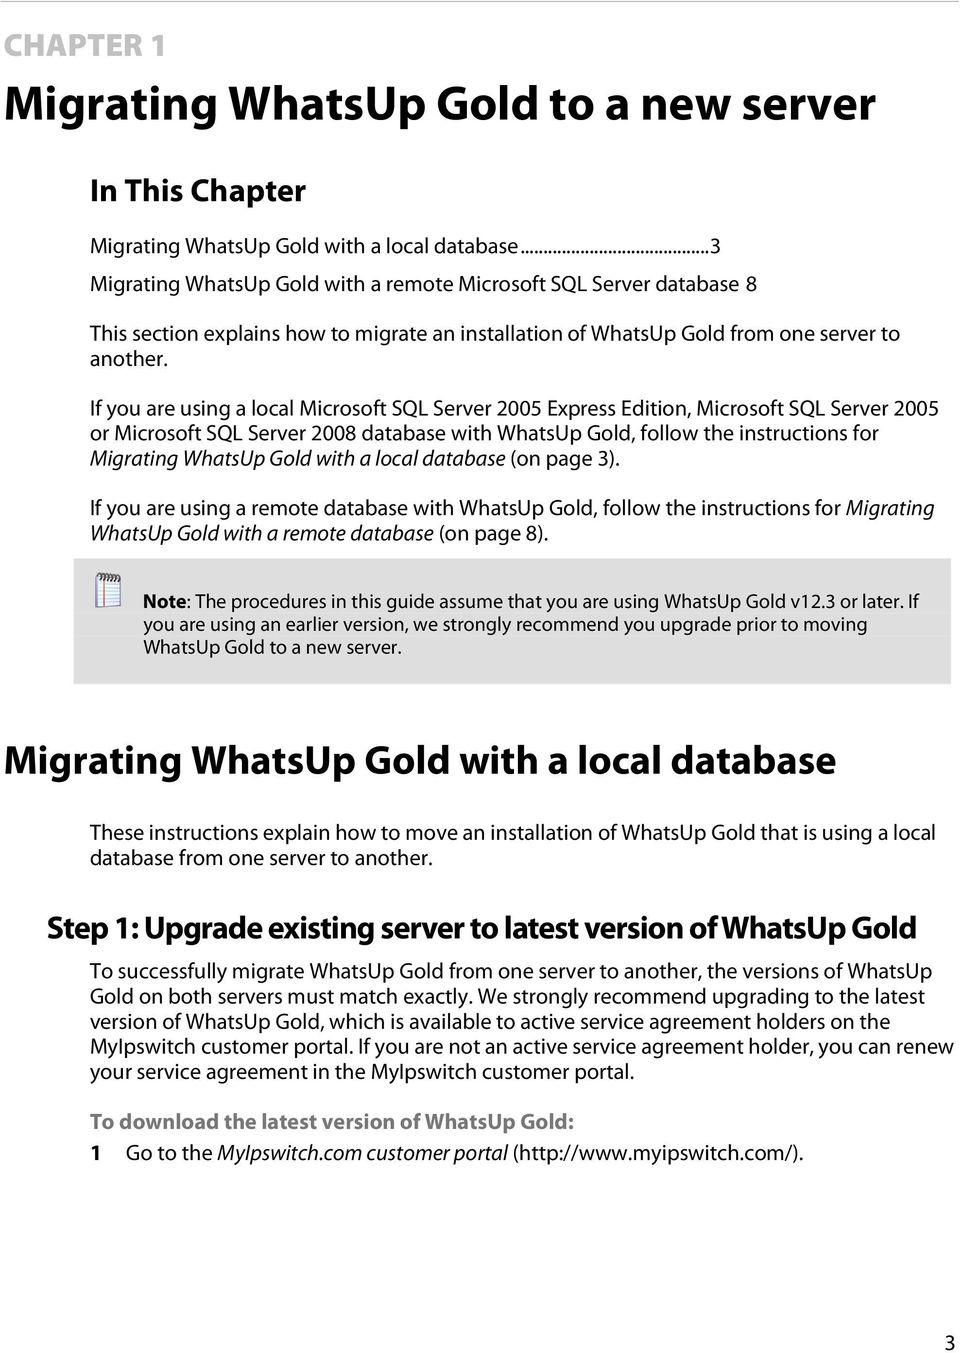 If you are using a local Microsoft SQL Server 2005 Express Edition, Microsoft SQL Server 2005 or Microsoft SQL Server 2008 database with WhatsUp Gold, follow the instructions for Migrating WhatsUp